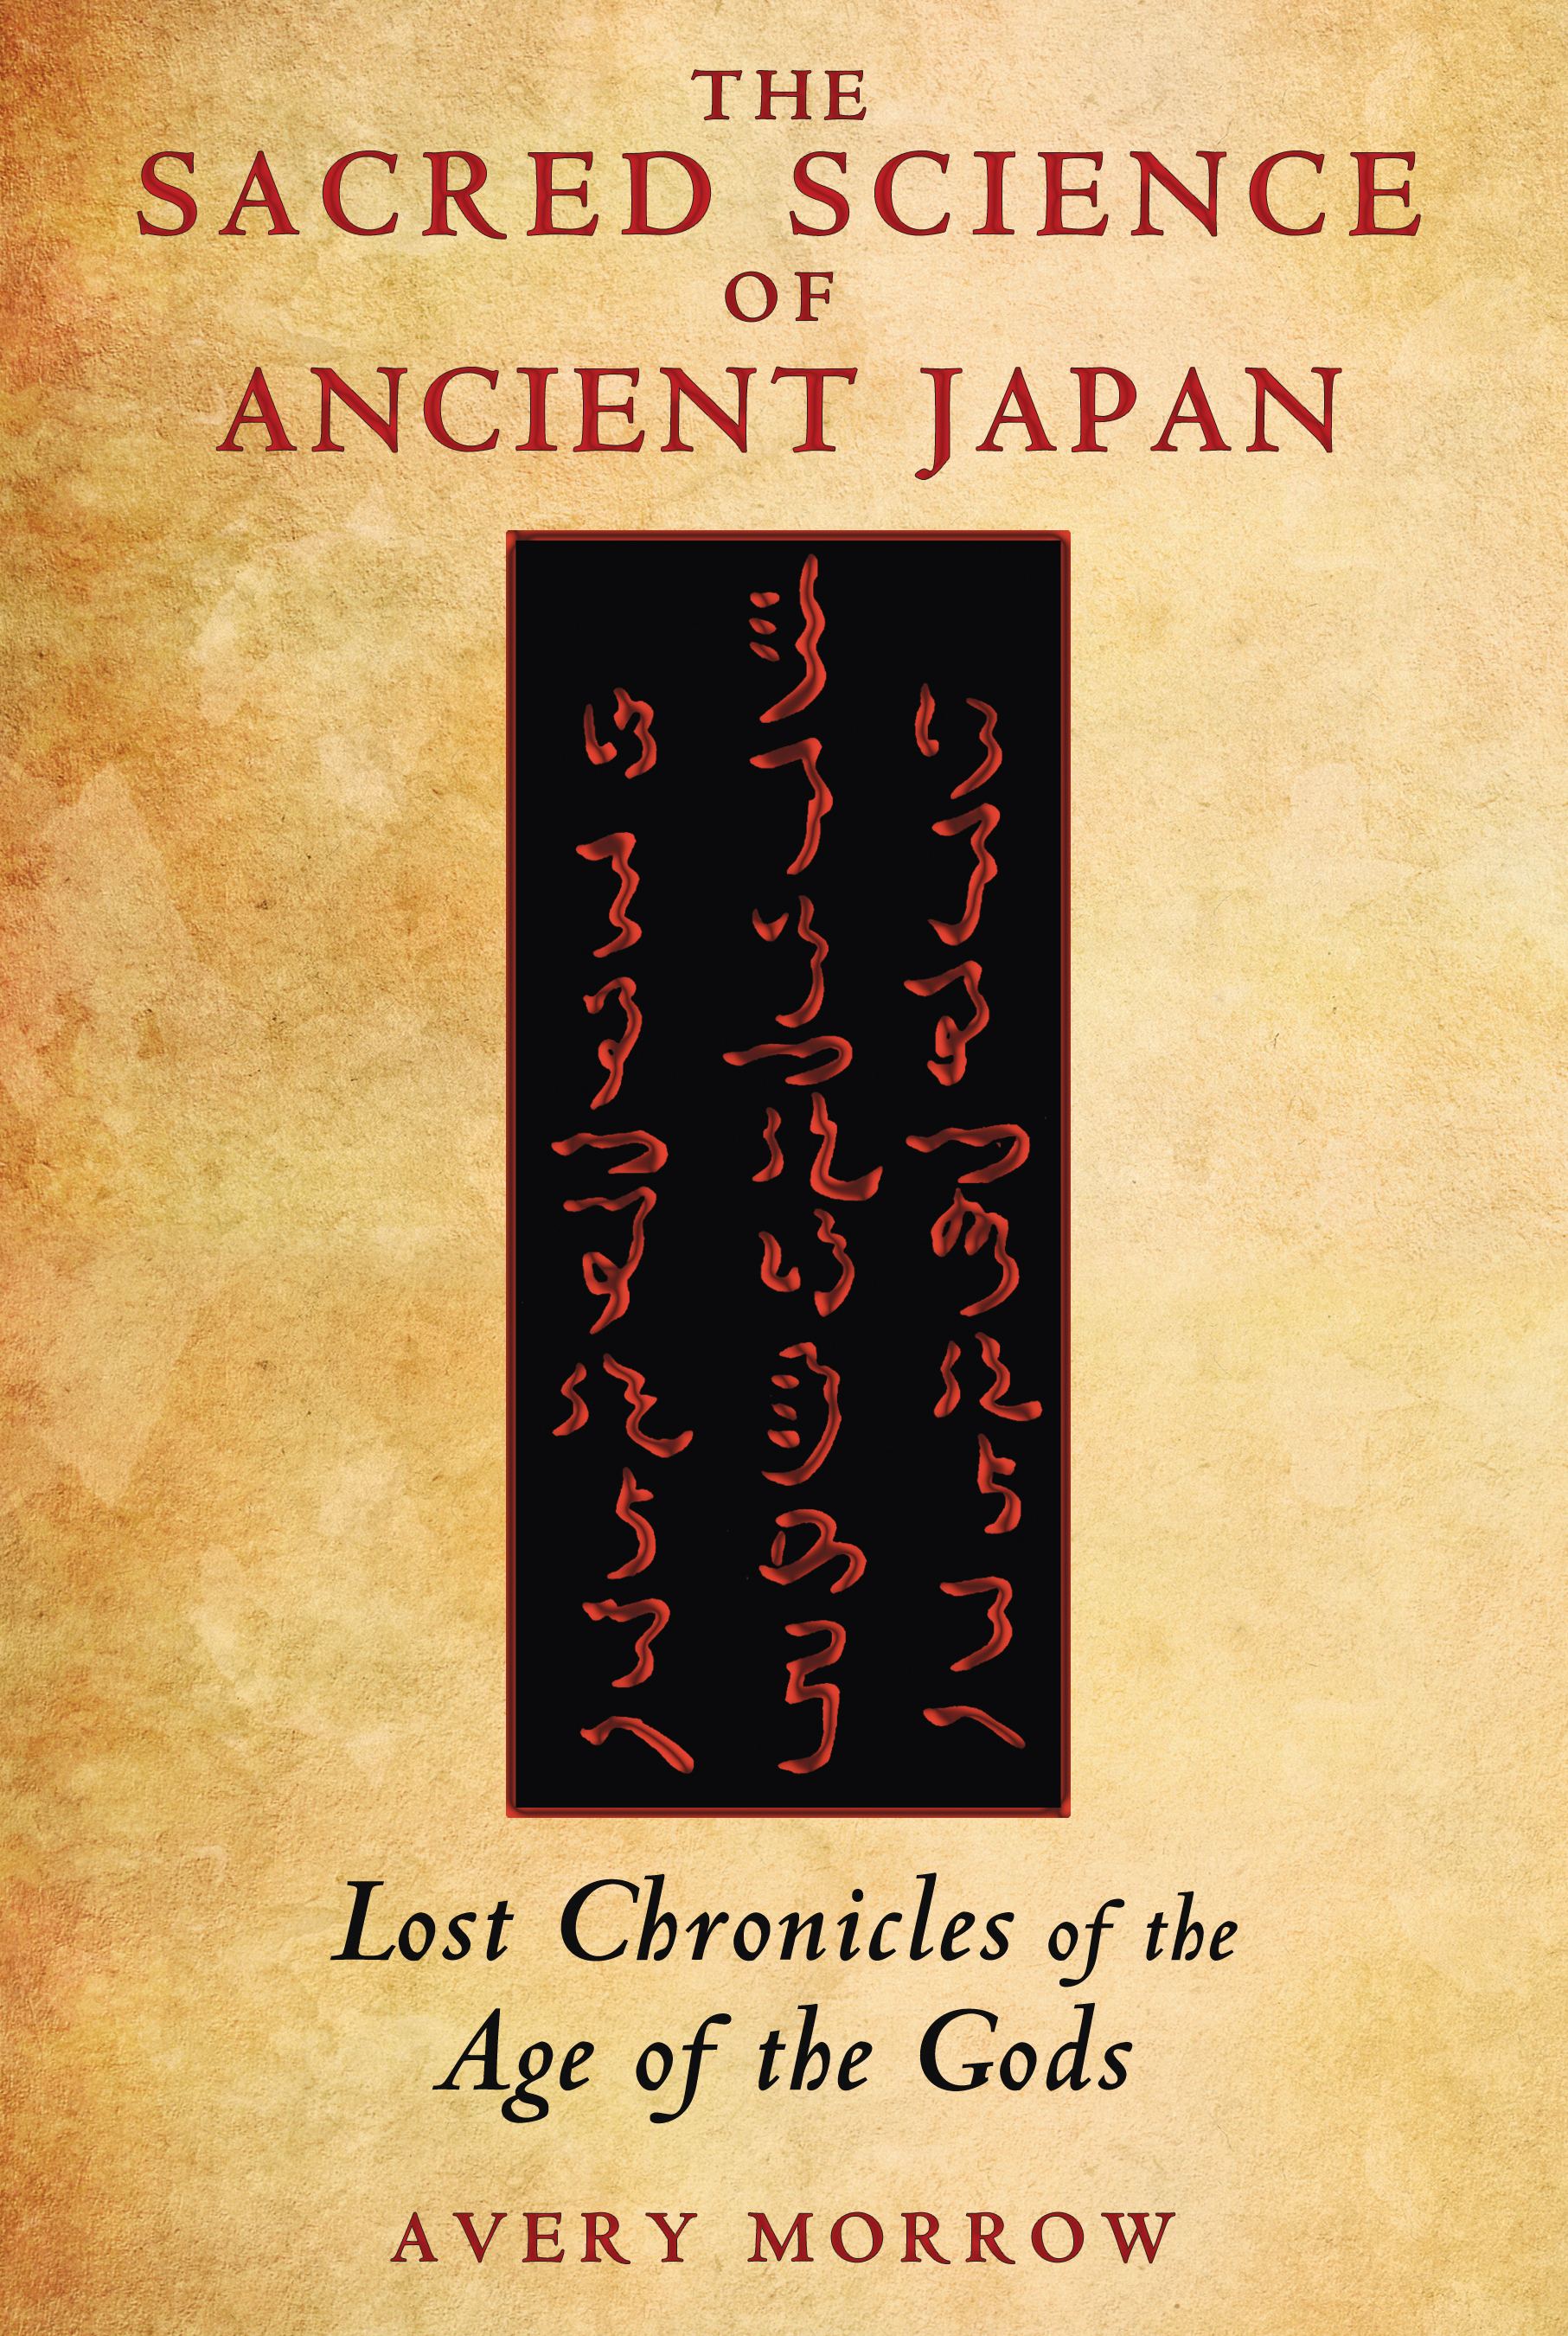 Sacred-science-of-ancient-japan-9781591431701_hr